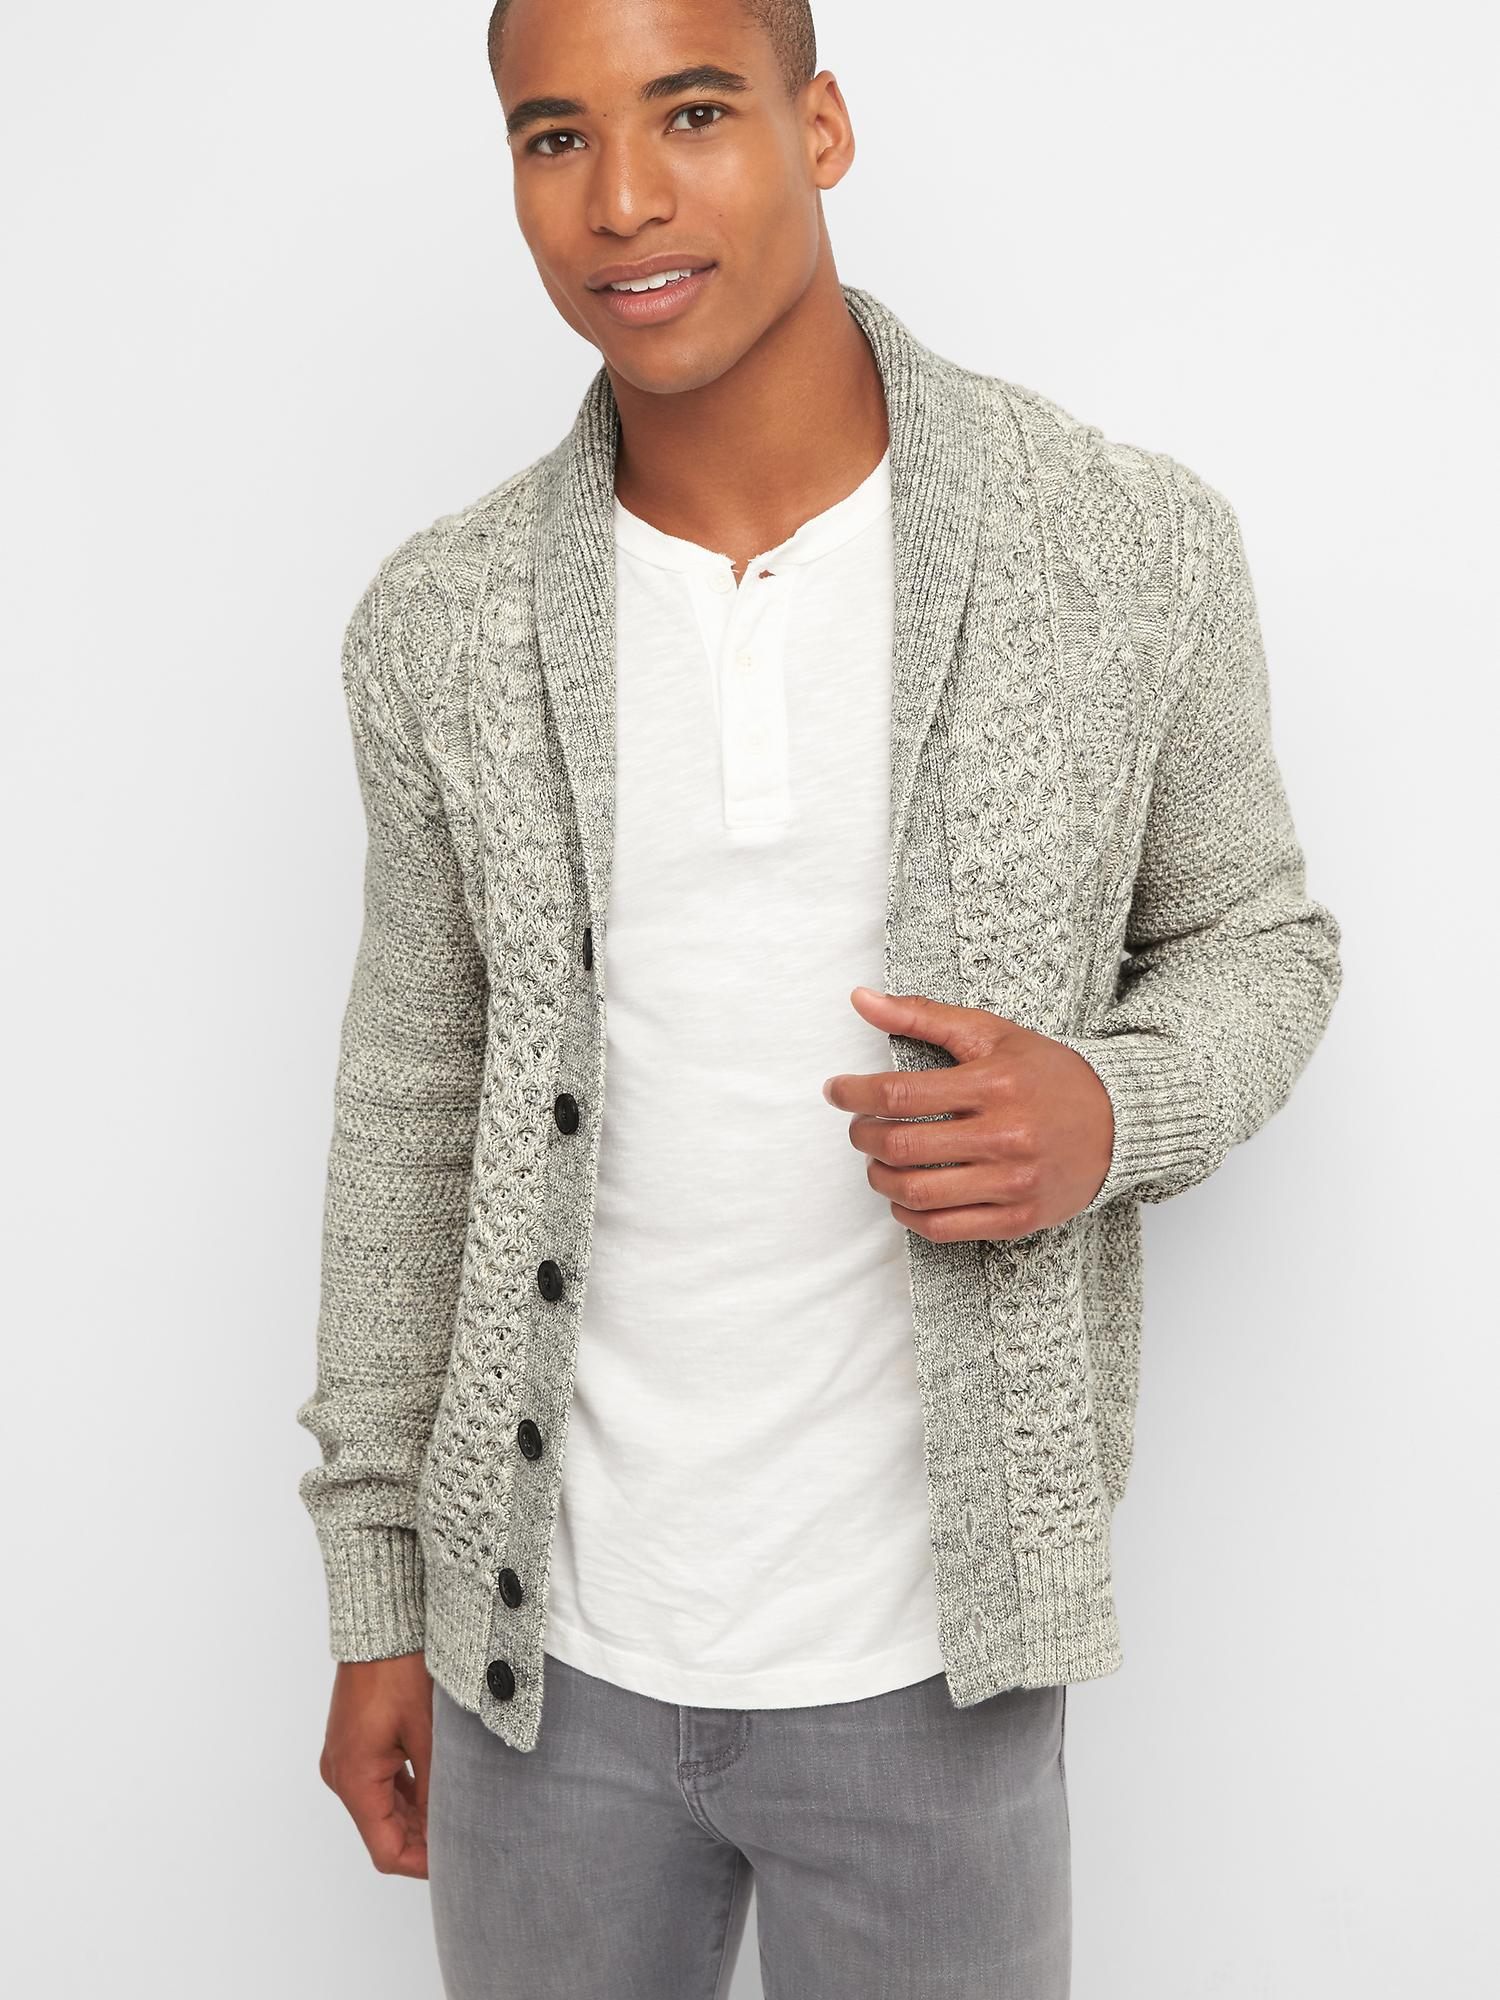 Cable-knit cardigan | Gap